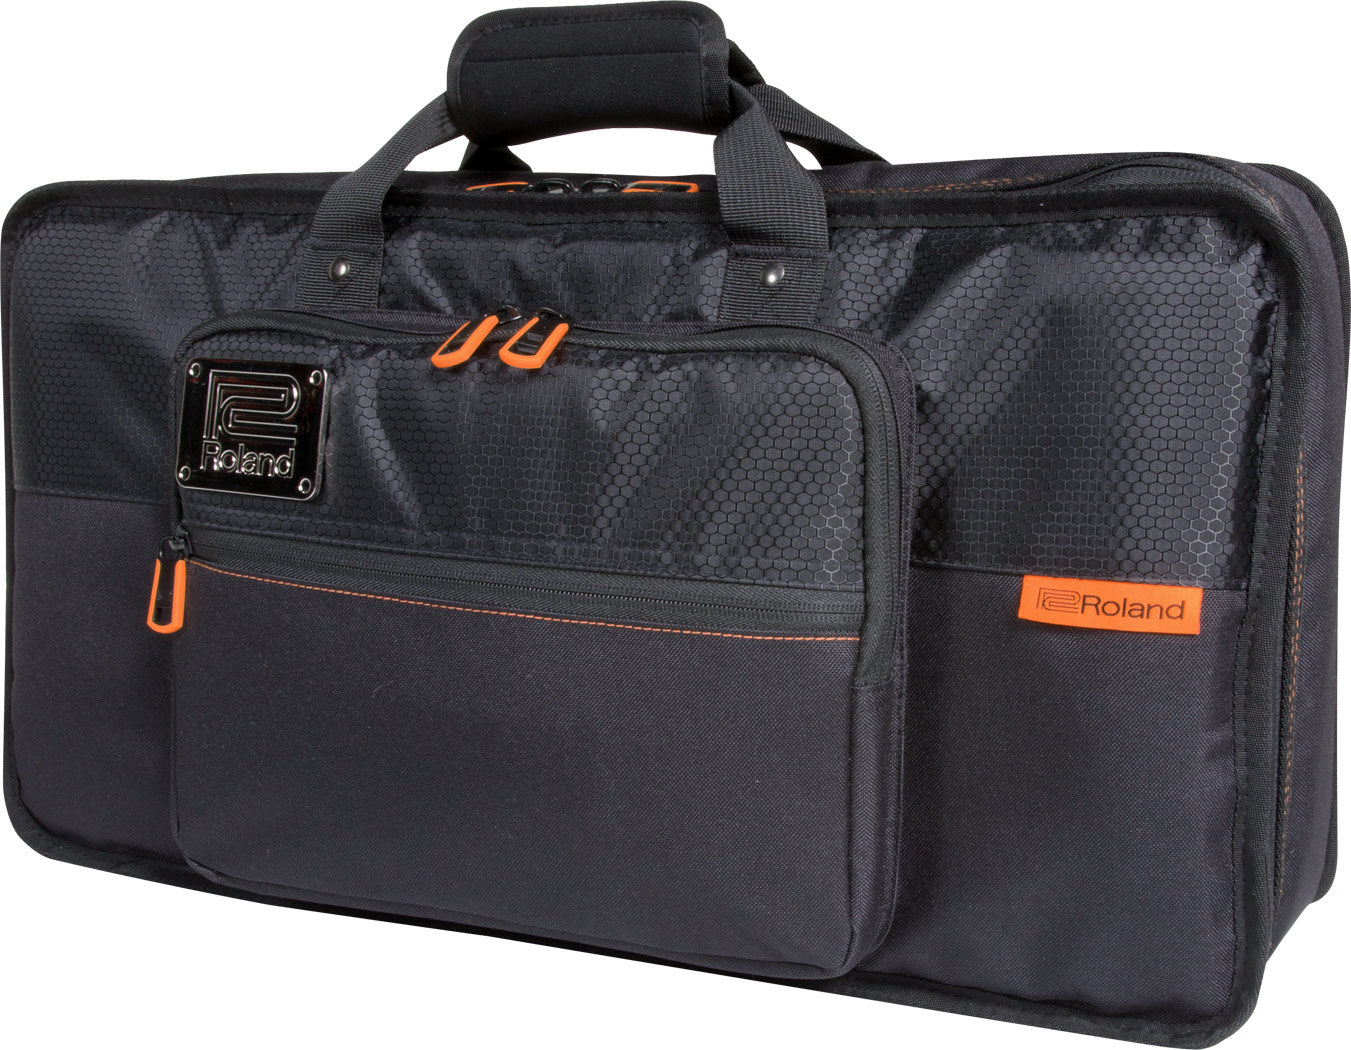 Roland CB-BOCT Carrying Bag